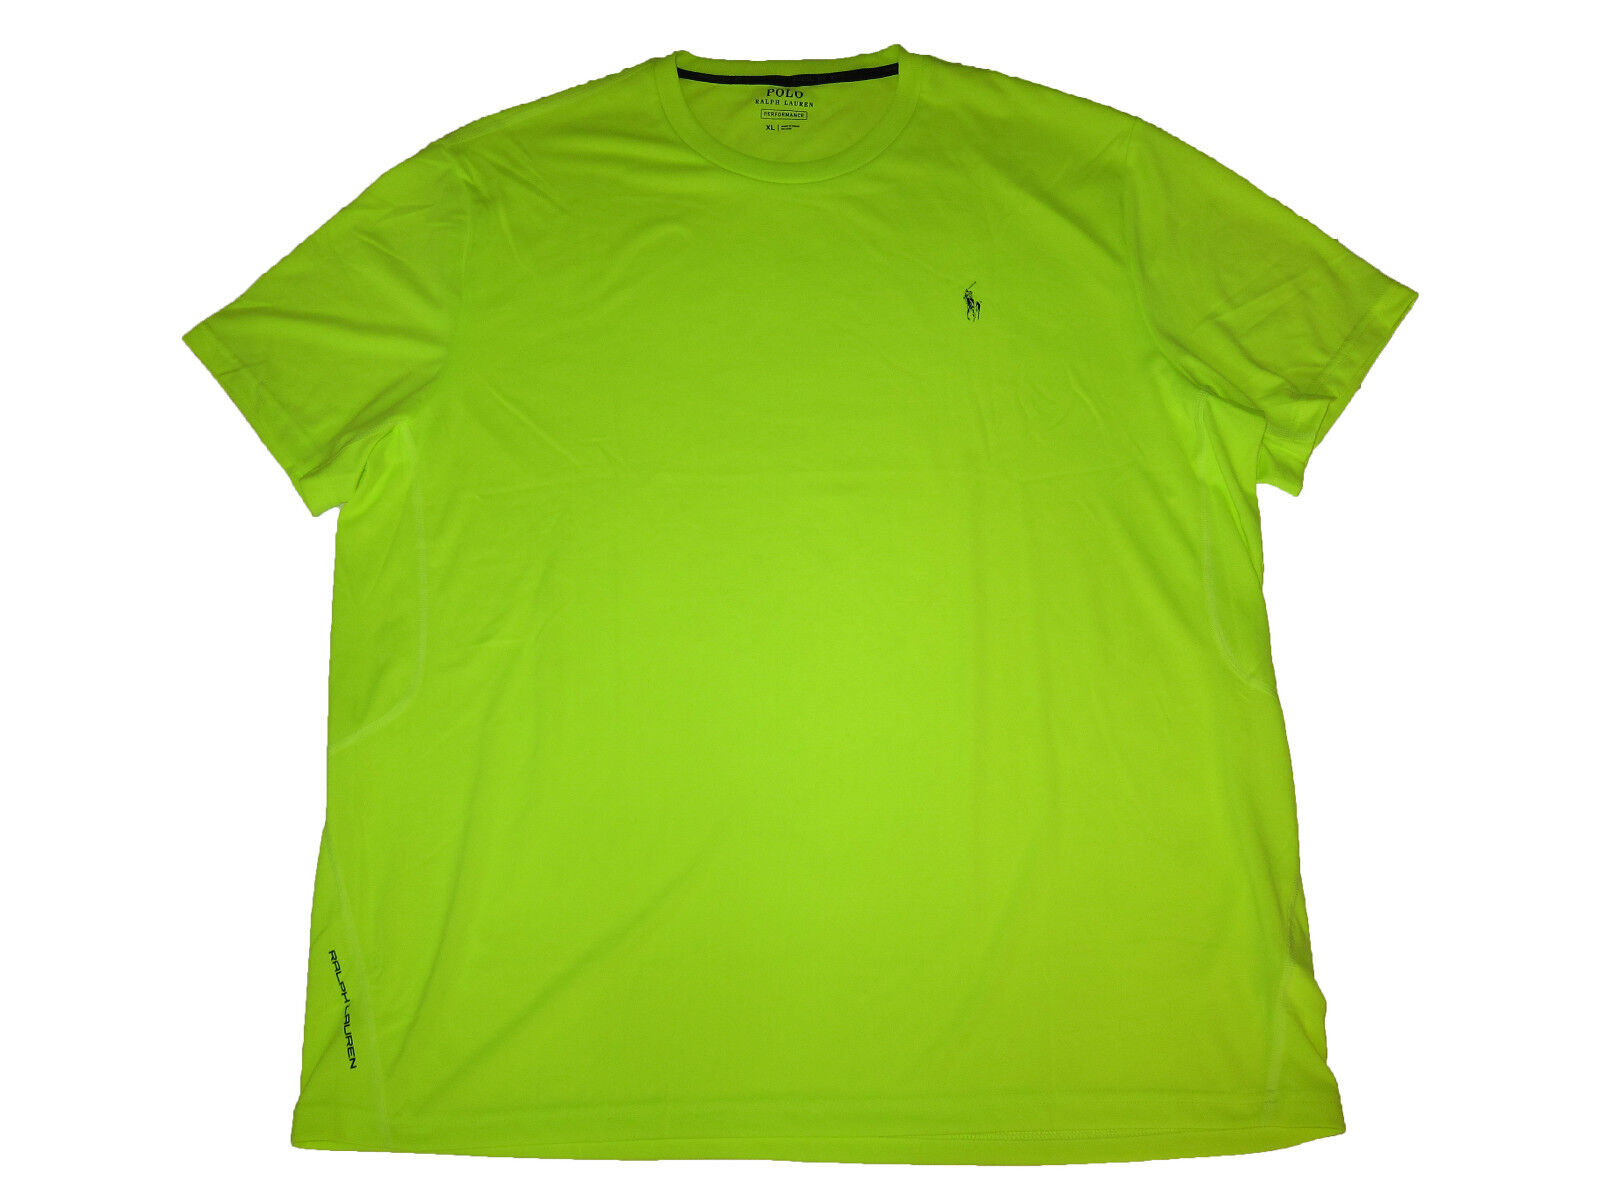 Polo Ralph Lauren Bright Neon Yellow Athletic Cycle Active Shirt Gym Apparel XXL